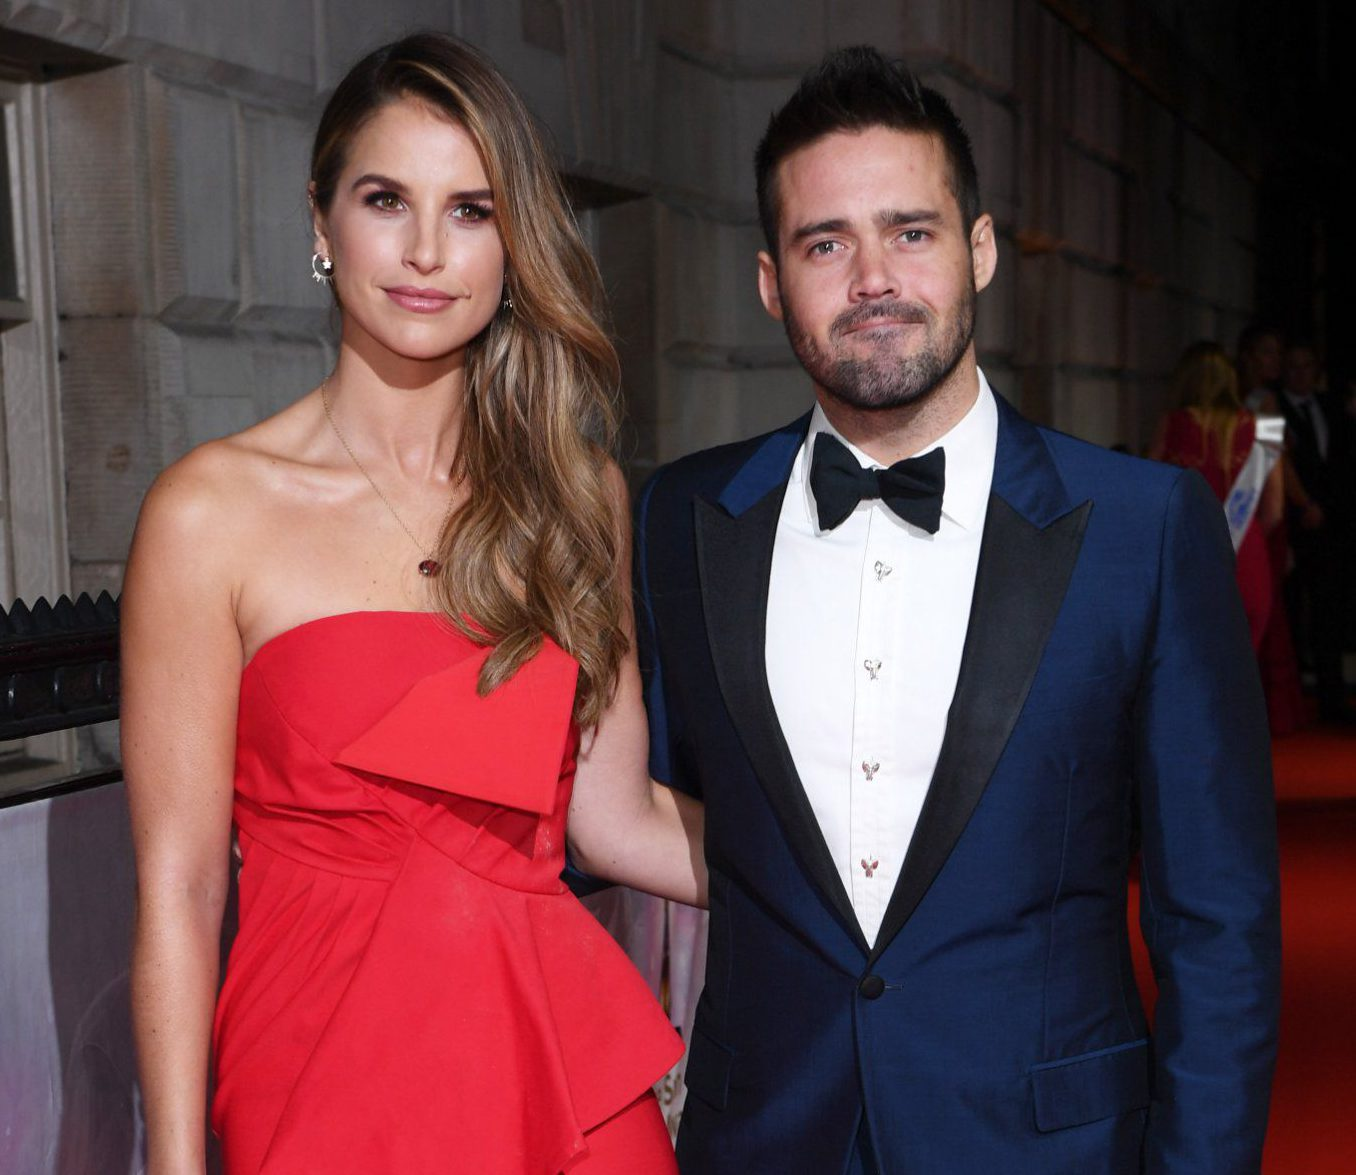 Mandatory Credit: Photo by David Fisher/REX/Shutterstock (9289778ai) Vogue Williams and Spencer Matthews The Sun Military Awards, London, UK - 13 Dec 2017